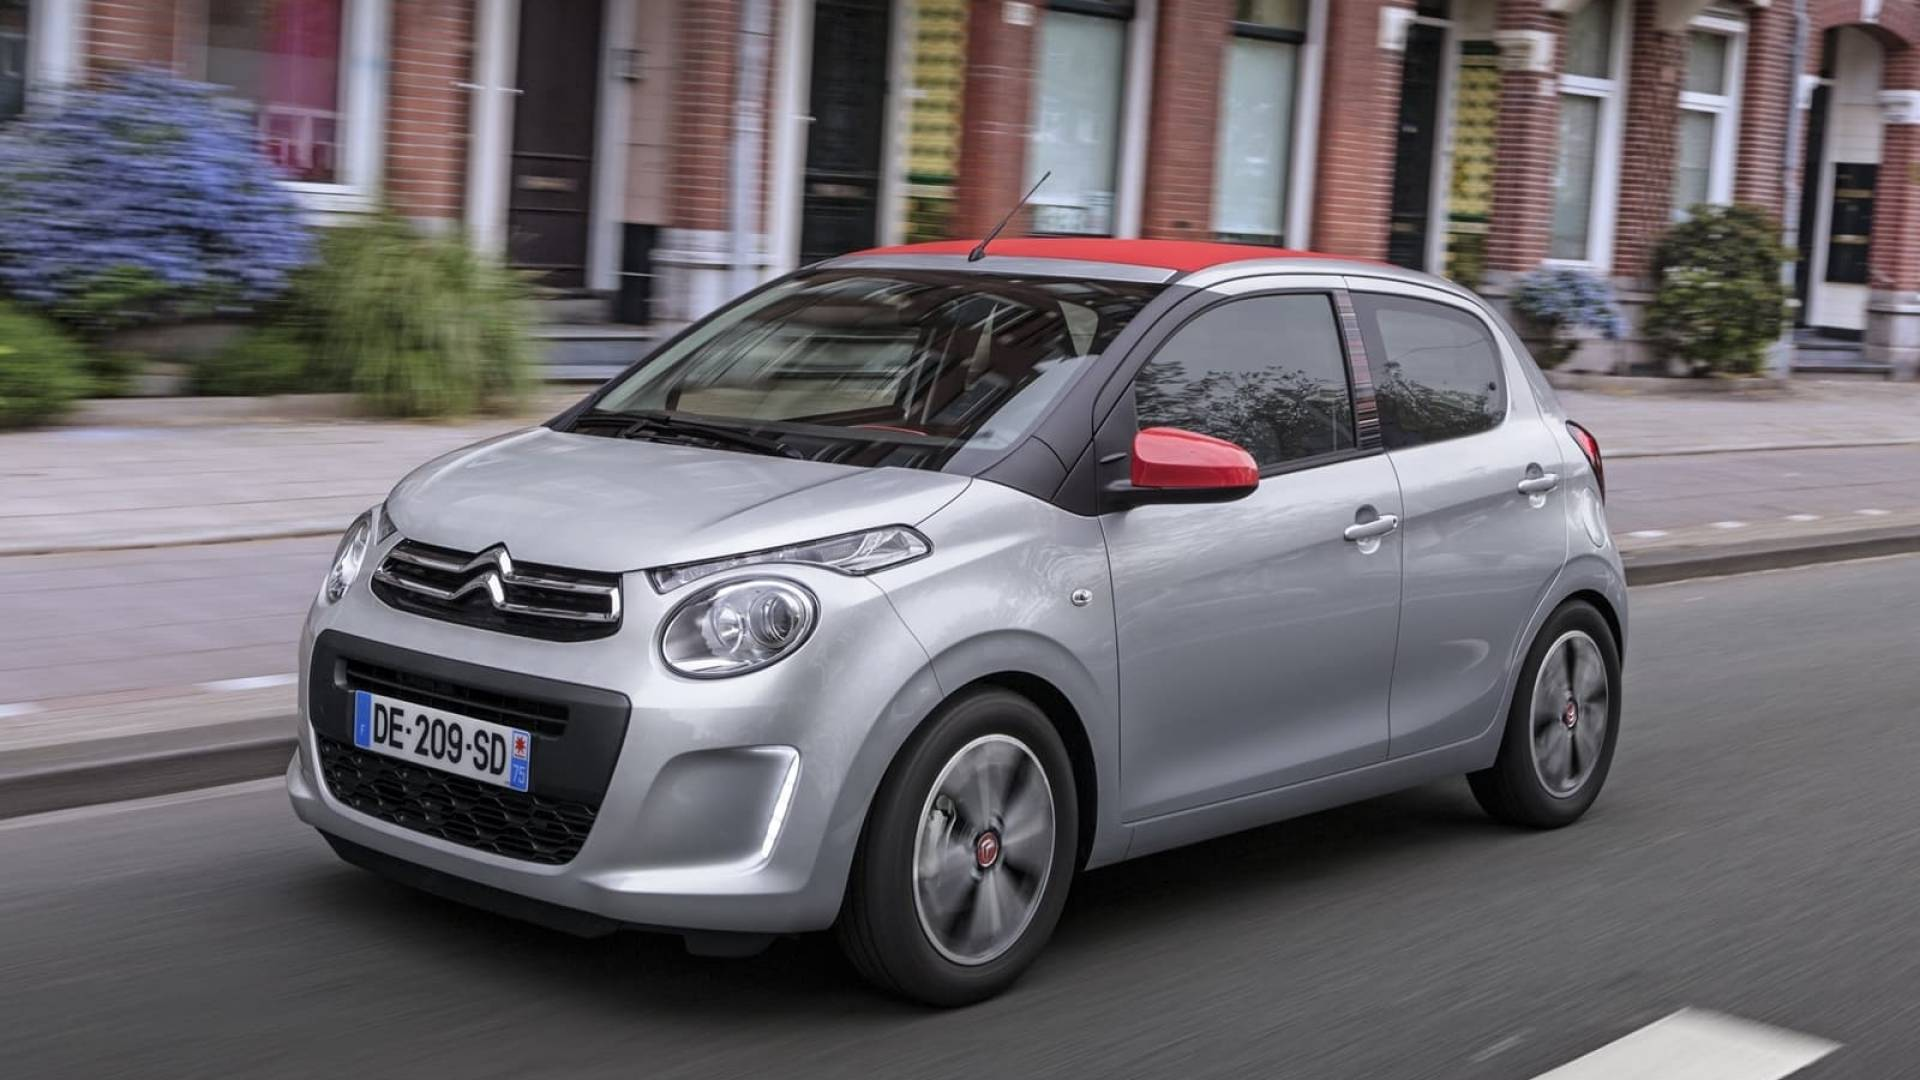 CitroËn C1 1.0 Vti 72 City Edition